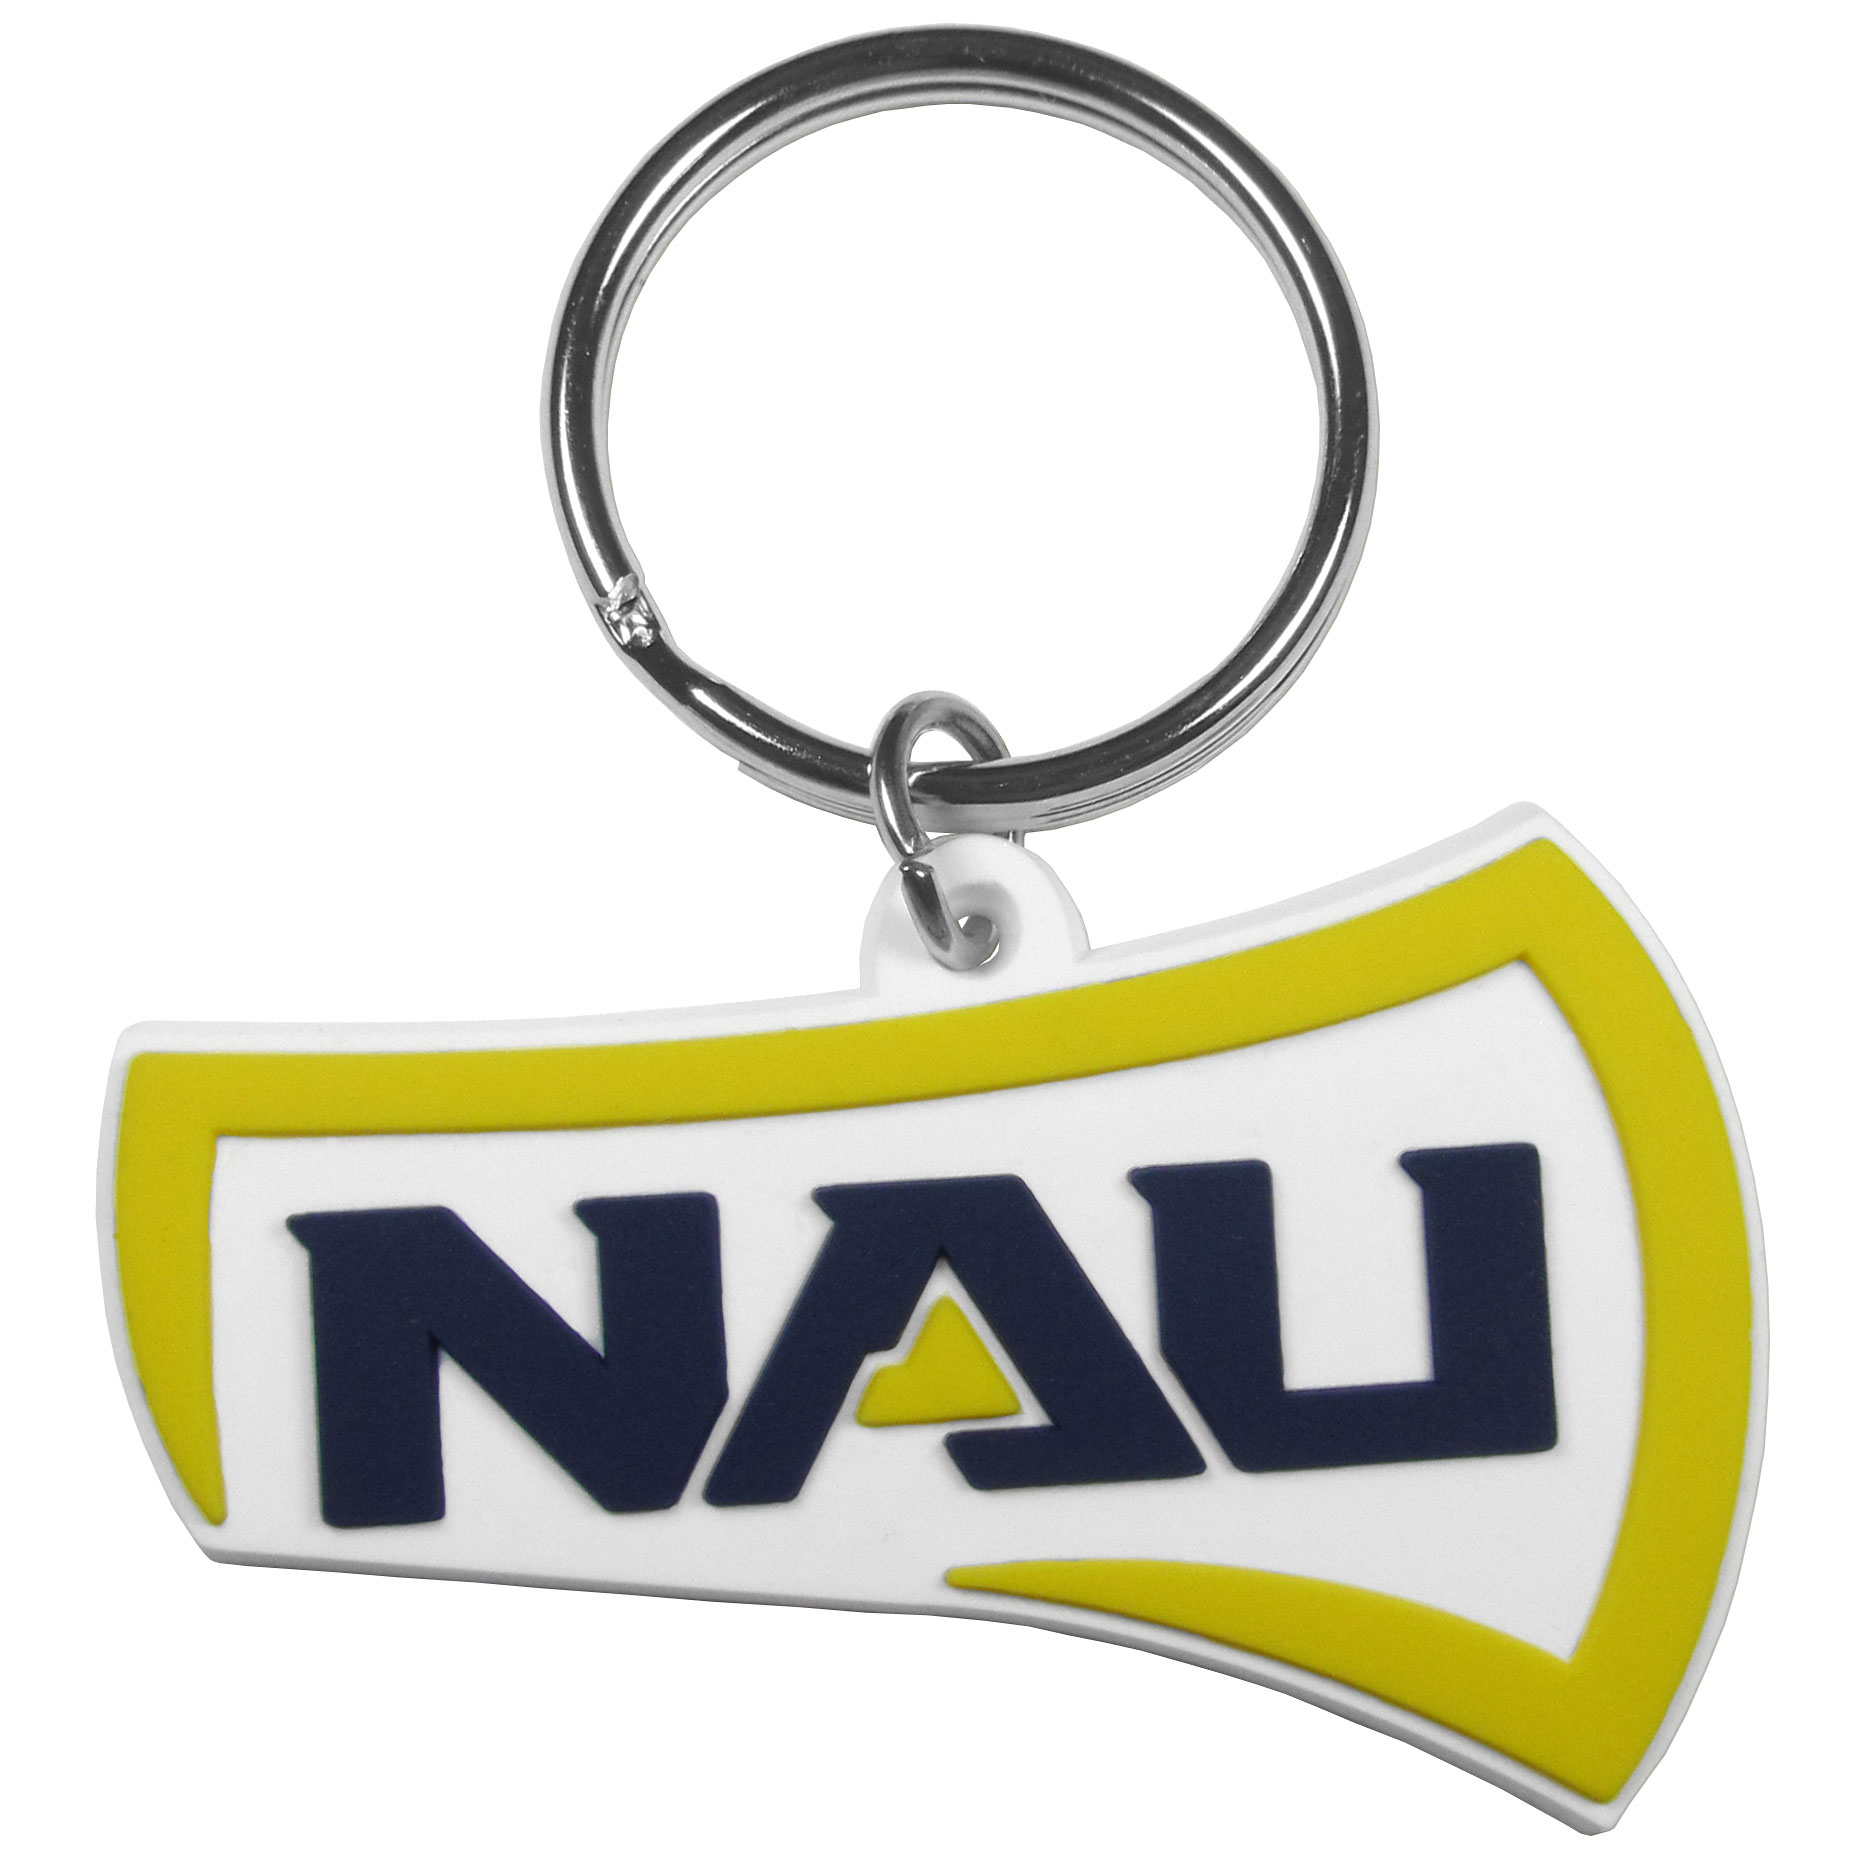 Northern Arizona Lumberjacks Flex Key Chain - Our fun, flexible Northern Arizona Lumberjacks key chains are made of a rubbery material that is layered to create a bright, textured logo.